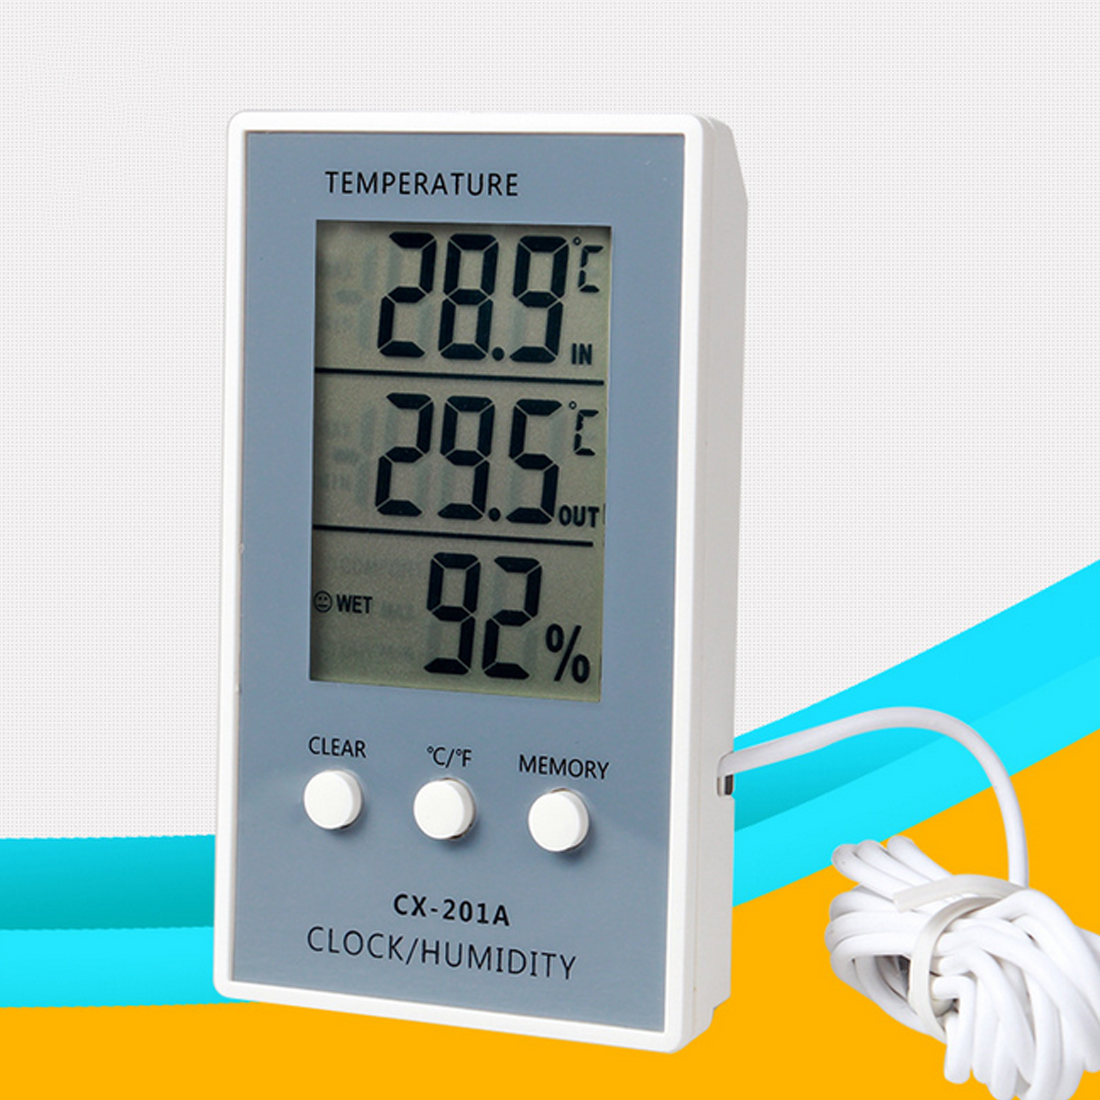 Thermometer Hygrometer Measure Temperature Humidity Digital LCD Meter Indoor Outdoor Weather Station Tester C/F Max Min ValueThermometer Hygrometer Measure Temperature Humidity Digital LCD Meter Indoor Outdoor Weather Station Tester C/F Max Min Value